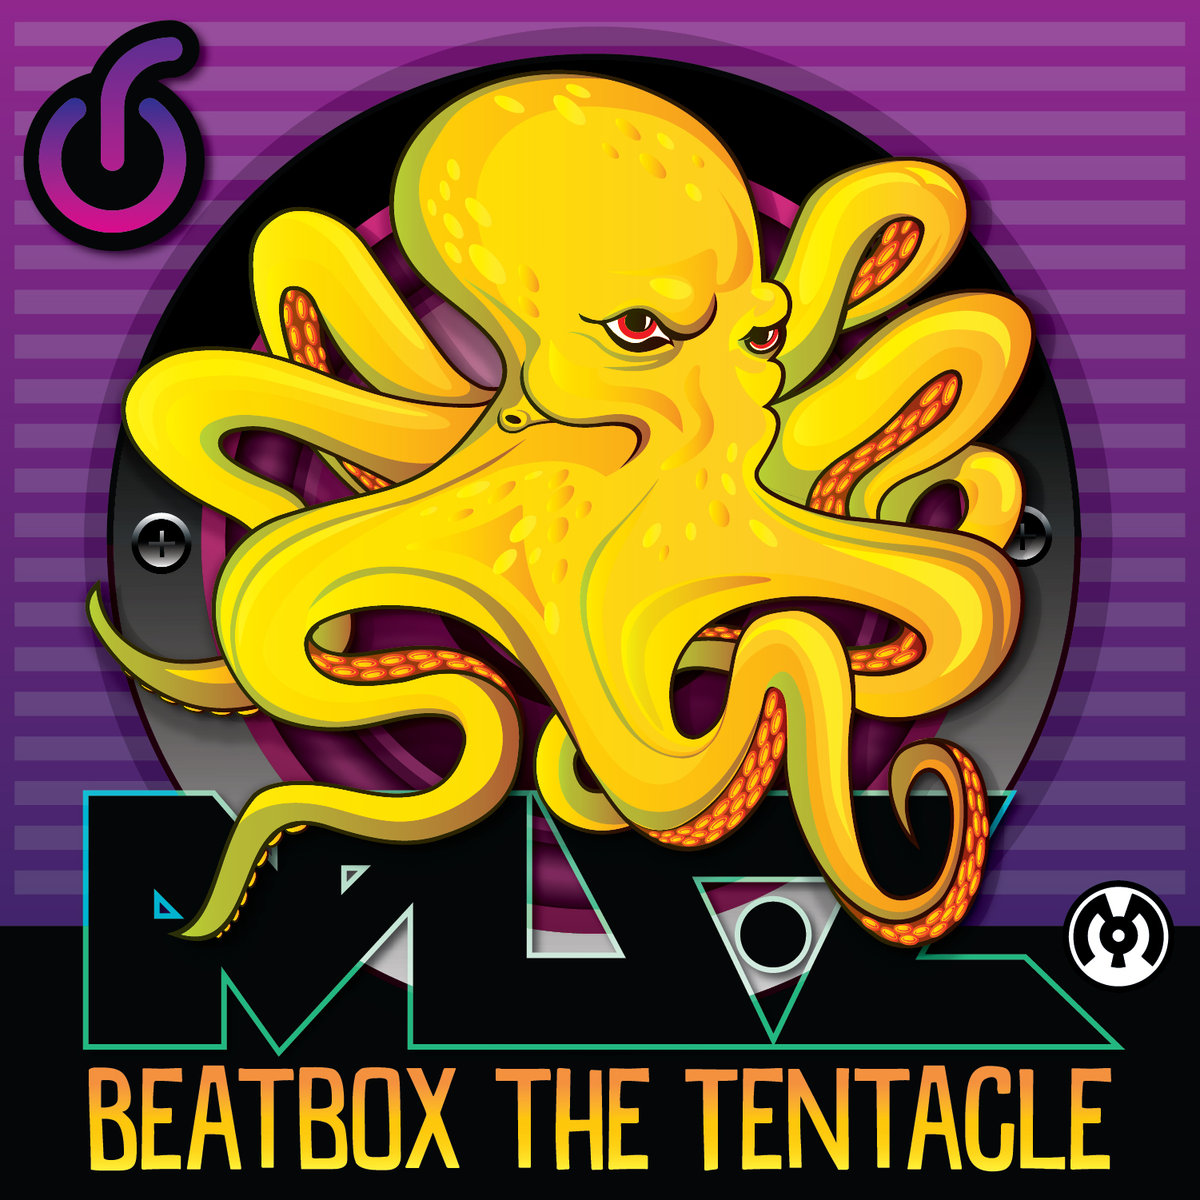 Aplsoz - Beatbox the Tentacle @ 'Beatbox the Tentacle' album (electronic, dubstep)